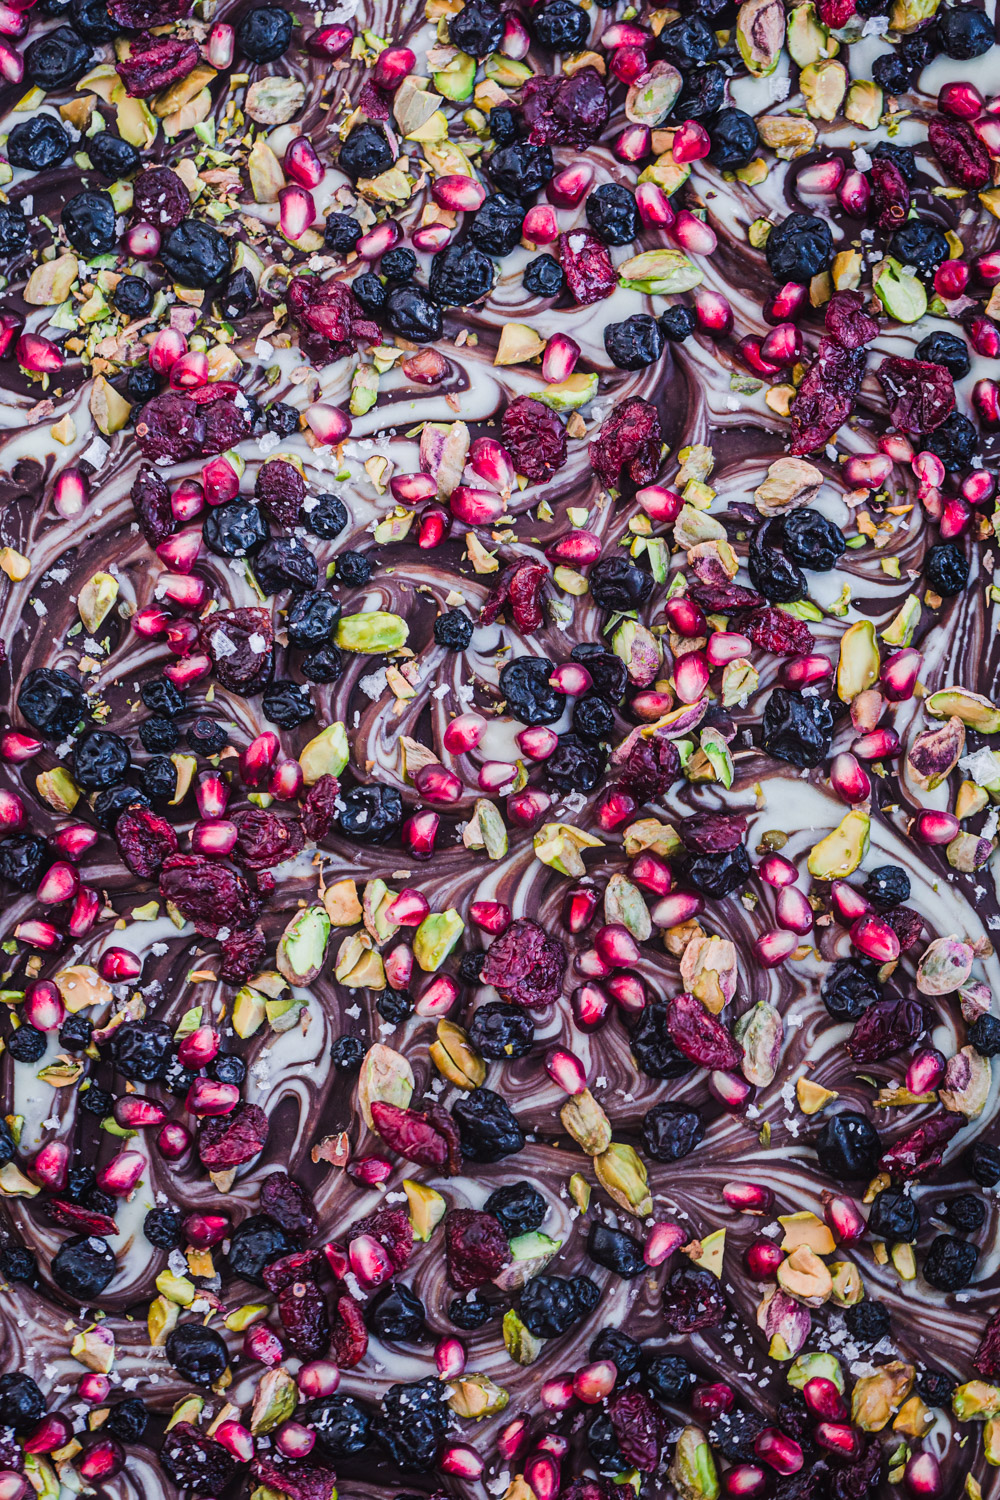 Dark chocolate bark with pistachios, dried cherries, dried cranberries, pomegranate seeds, flaky sea salt and a white chocolate swirl on top.